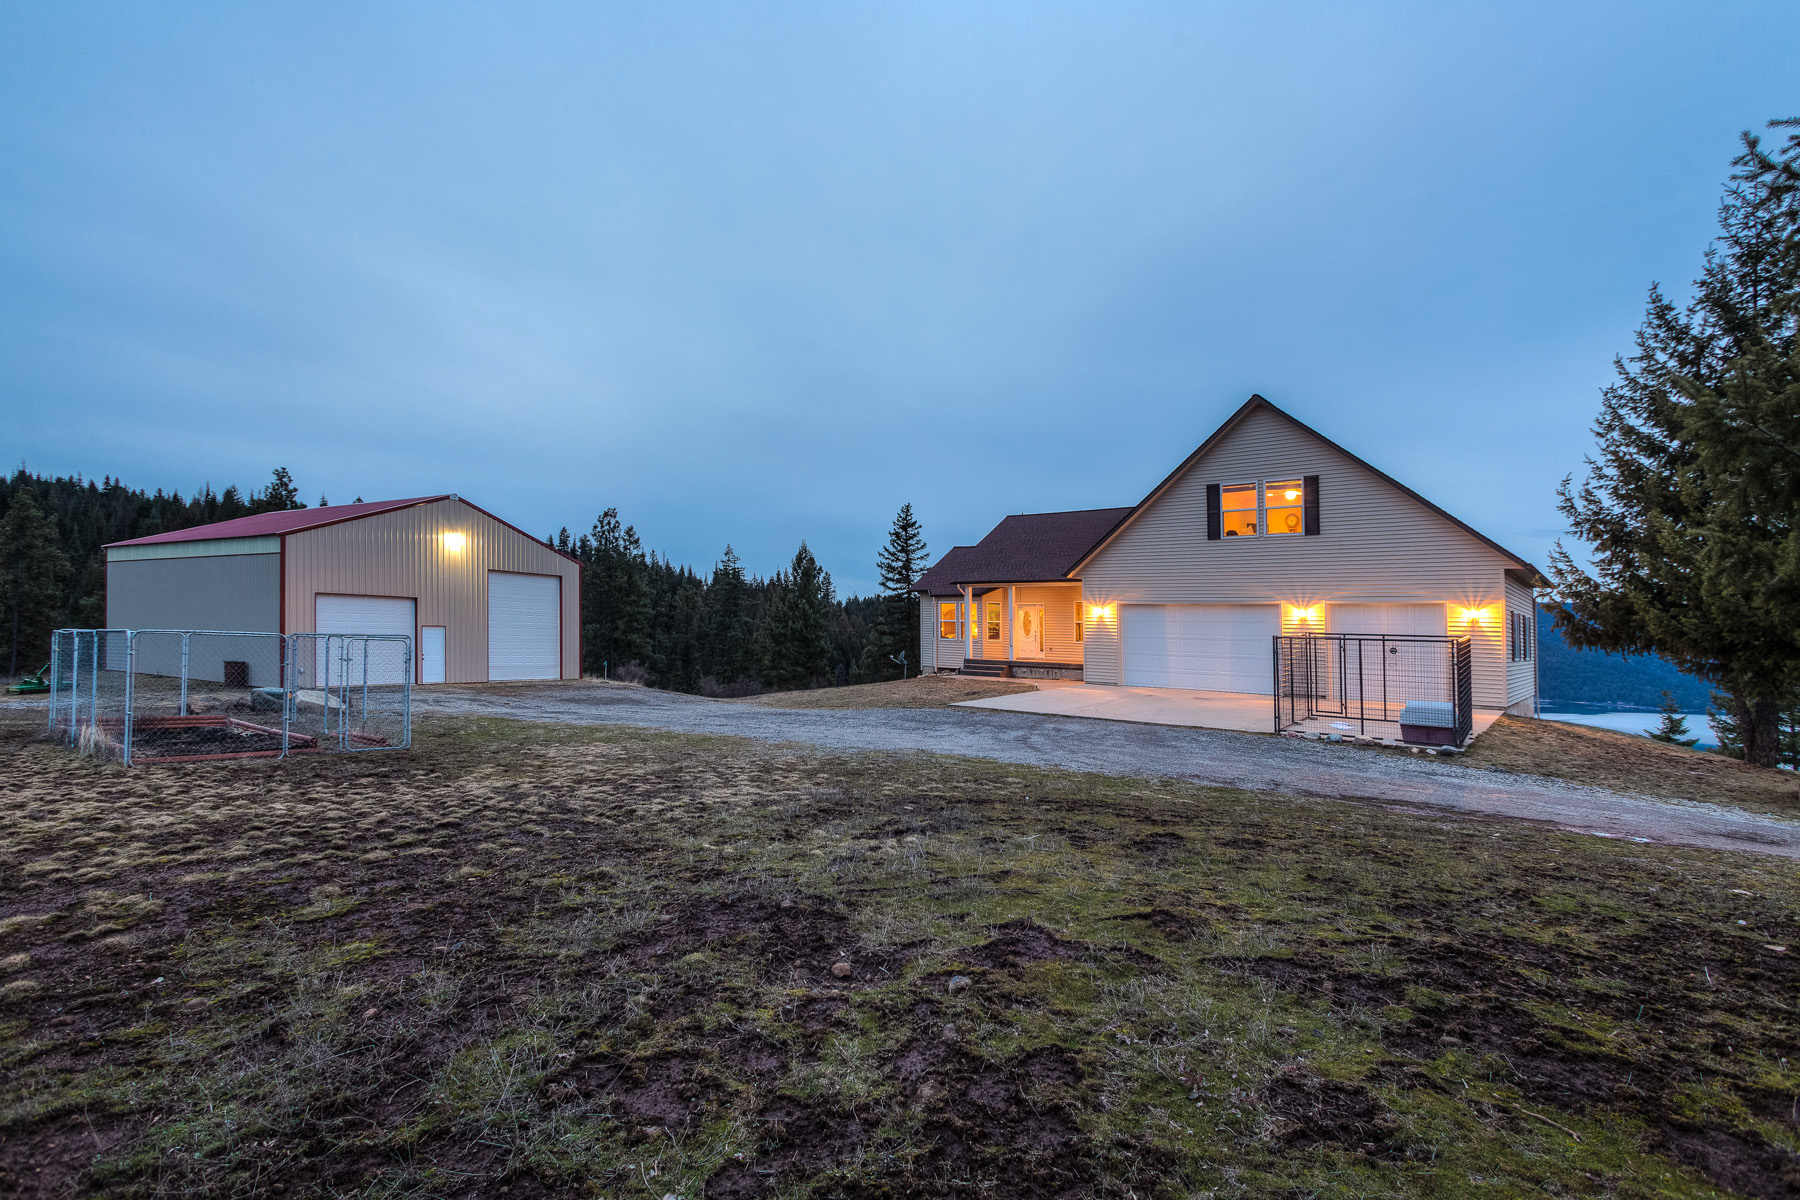 Property For Sale at Stunning Lake Views and Acreage Privacy